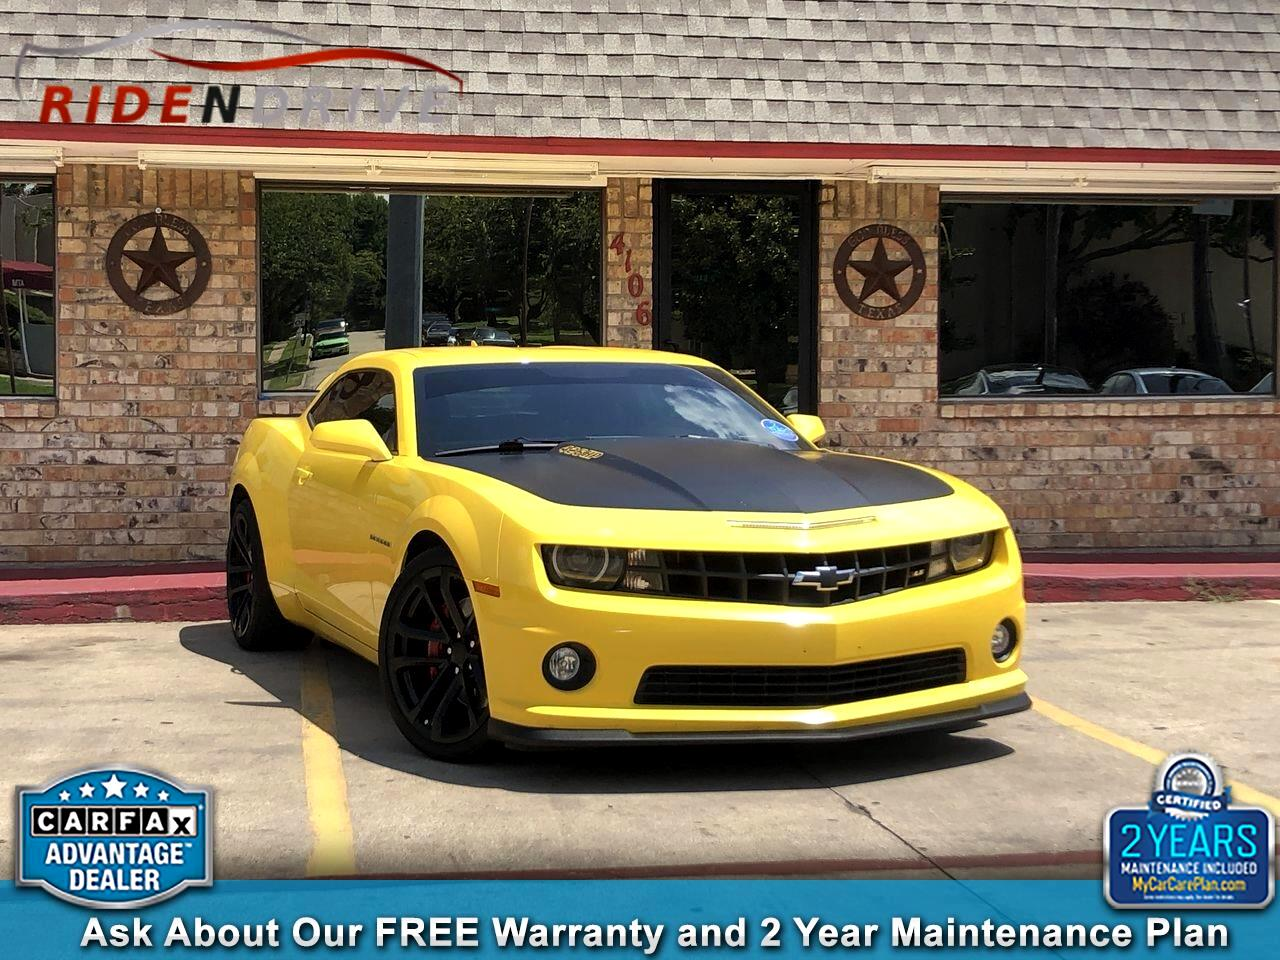 2013 Chevrolet Camaro 2dr Cpe SS w/2SS